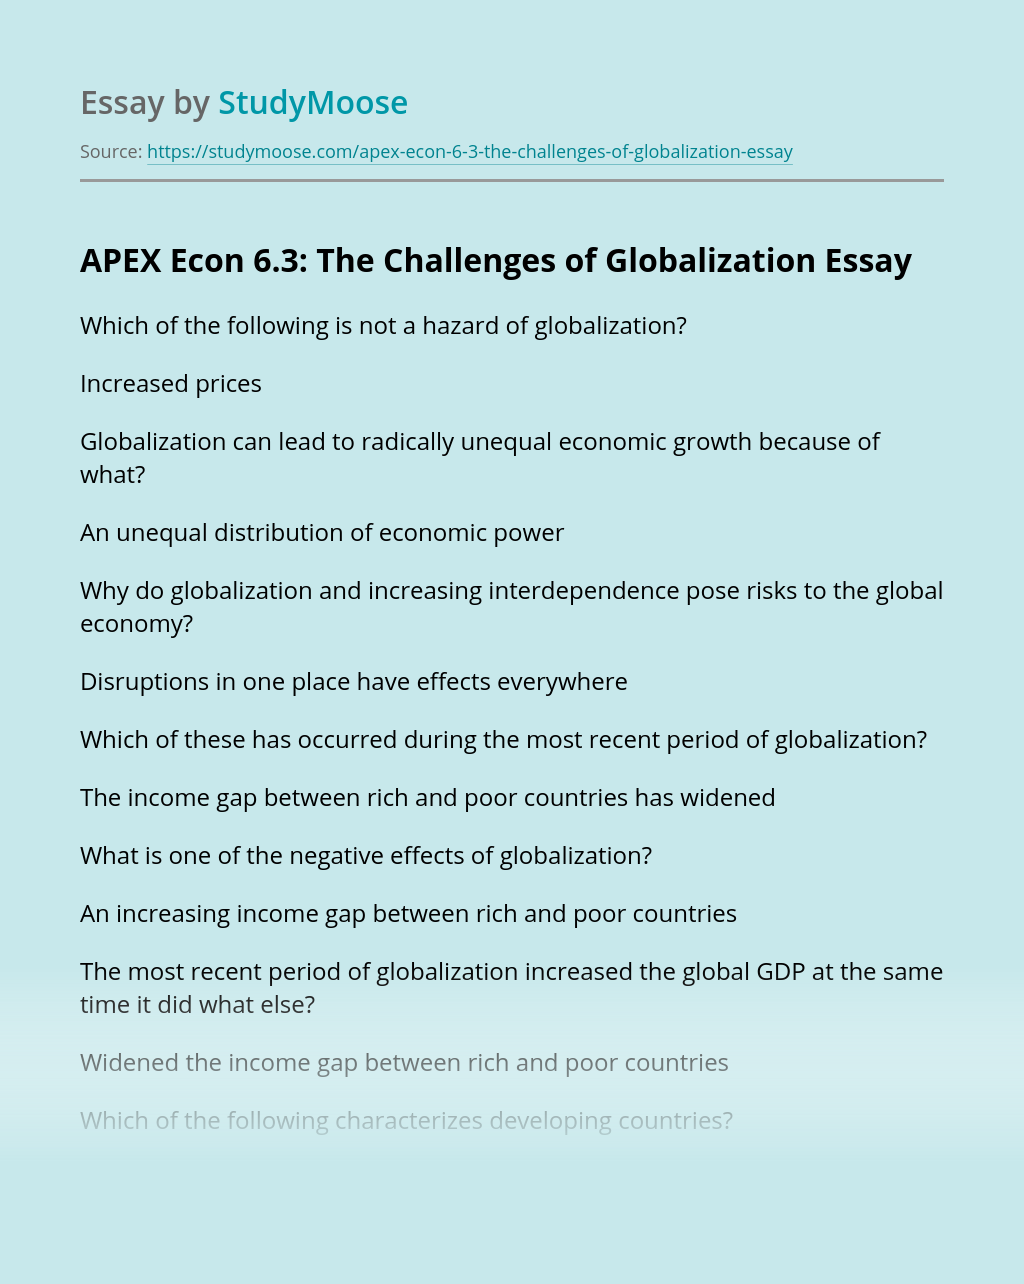 APEX Econ 6.3: The Challenges of Globalization